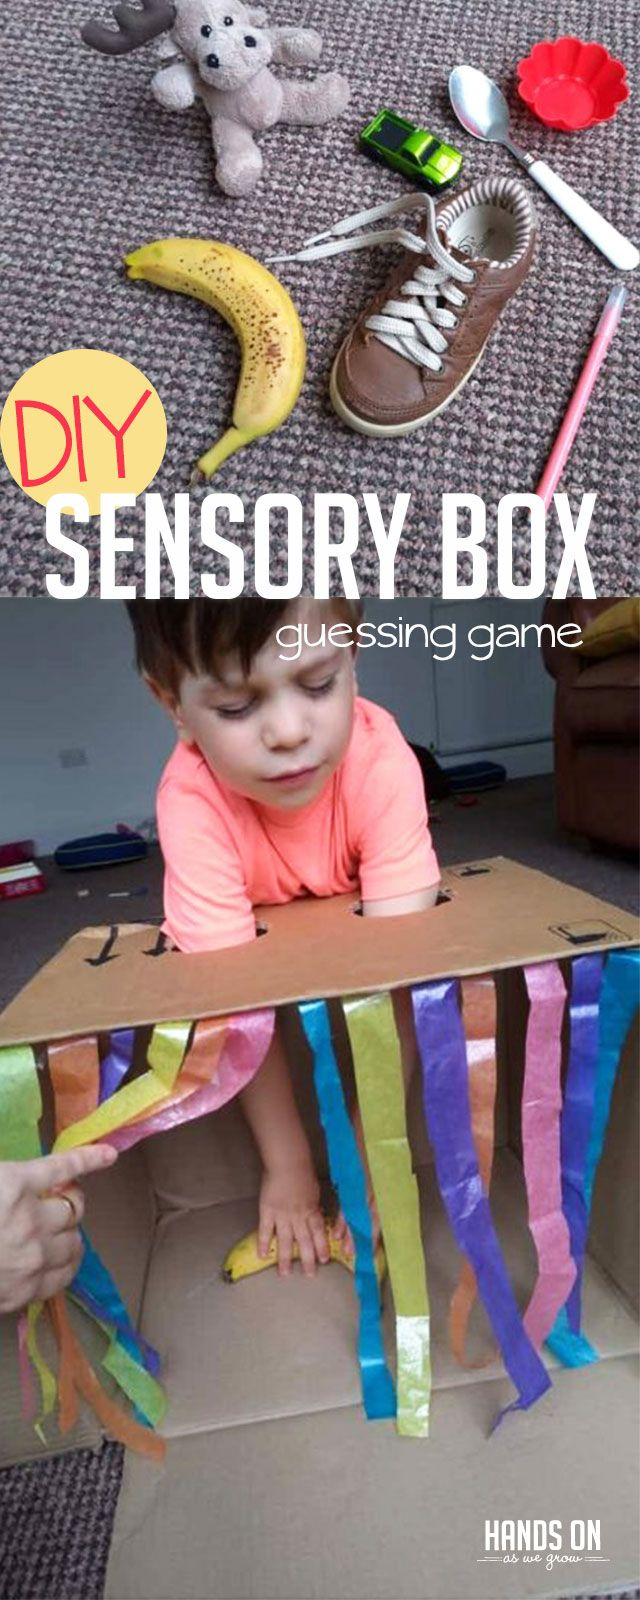 Super Simple Sensory Box Guessing Game for Kids | HOAWG